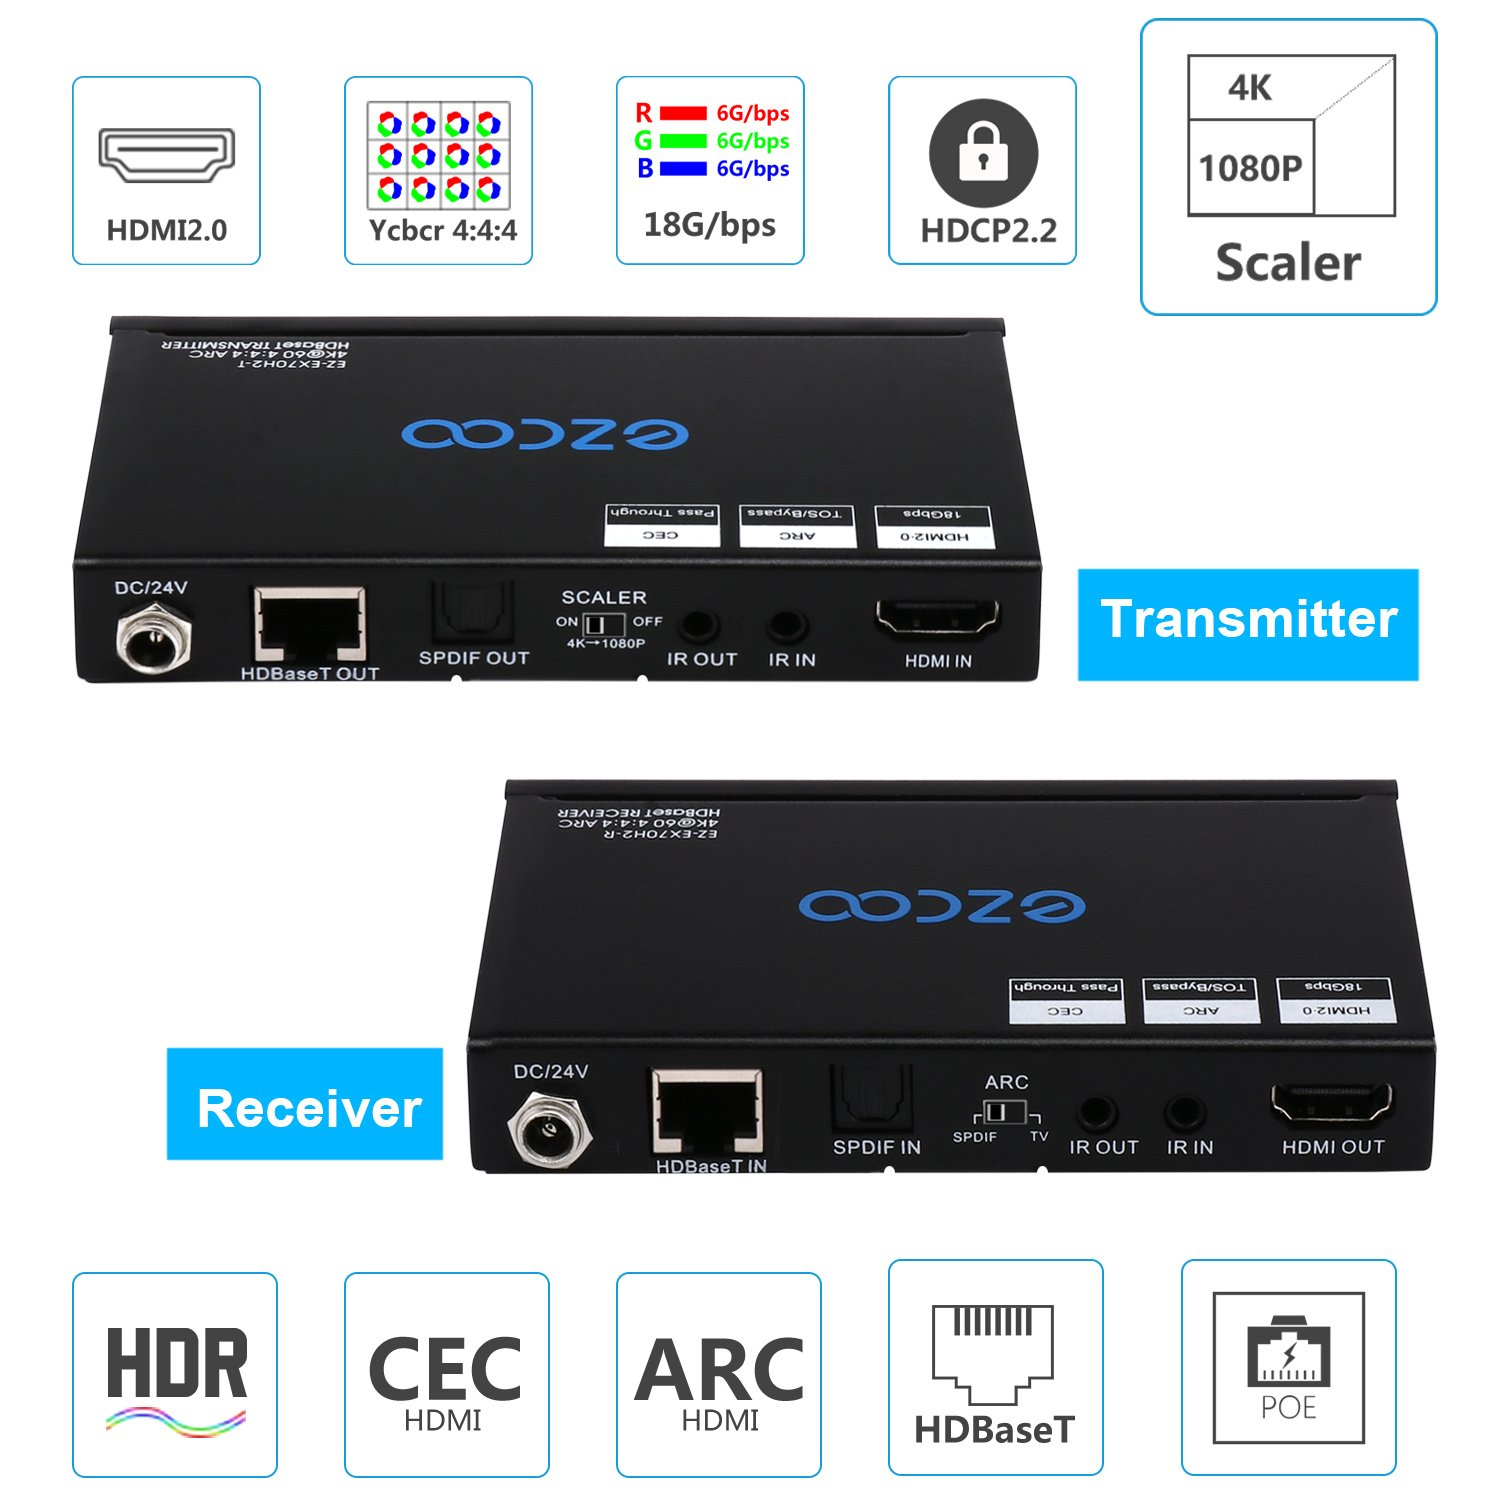 EZCOO 4K HDMI 2.0 Extender ARC HDR Scaler,HDBaseT Extender,Uncompressed 4K 60Hz 4:4:4 18Gbps HDCP 2.2 SPDIF, 4K/ 1080P Scaler Out, 230ft 1080P, 130ft 4K via Cat5e/6a, Bi-directional PoE+IR, CEC, DTS:X by EZCOO (Image #1)